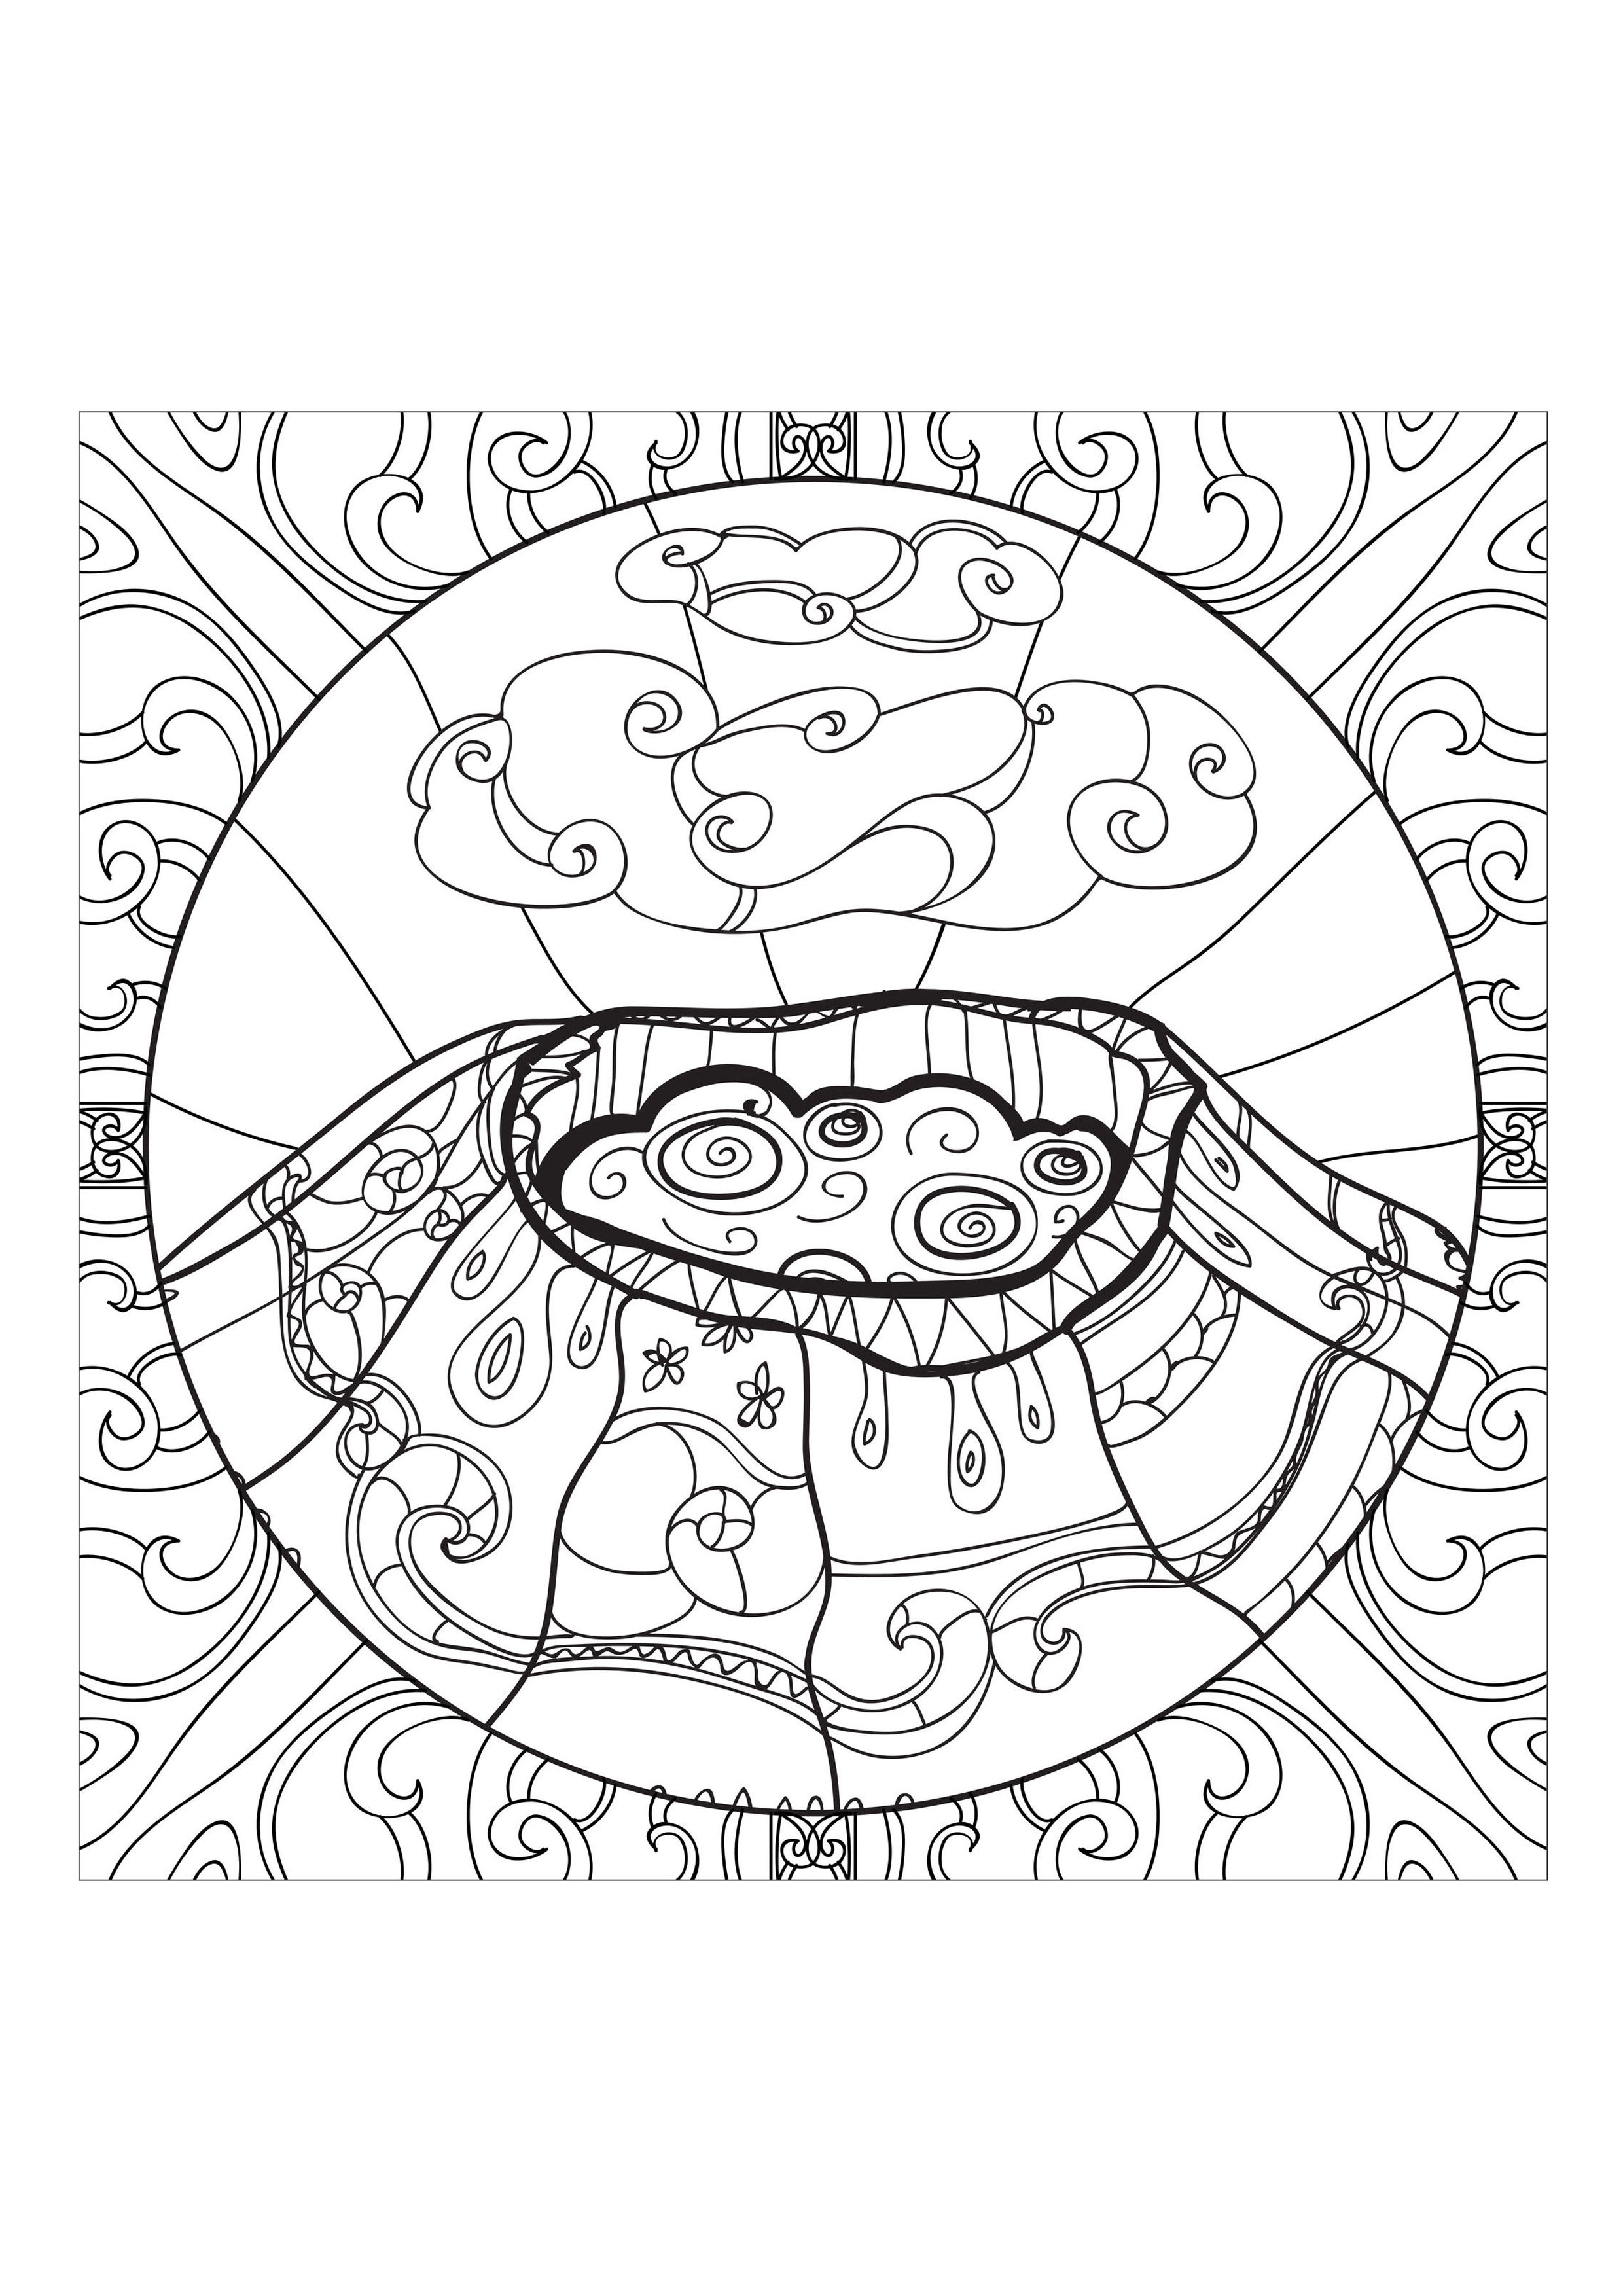 Coloring Page Volcano 1 A In Eruption Soon